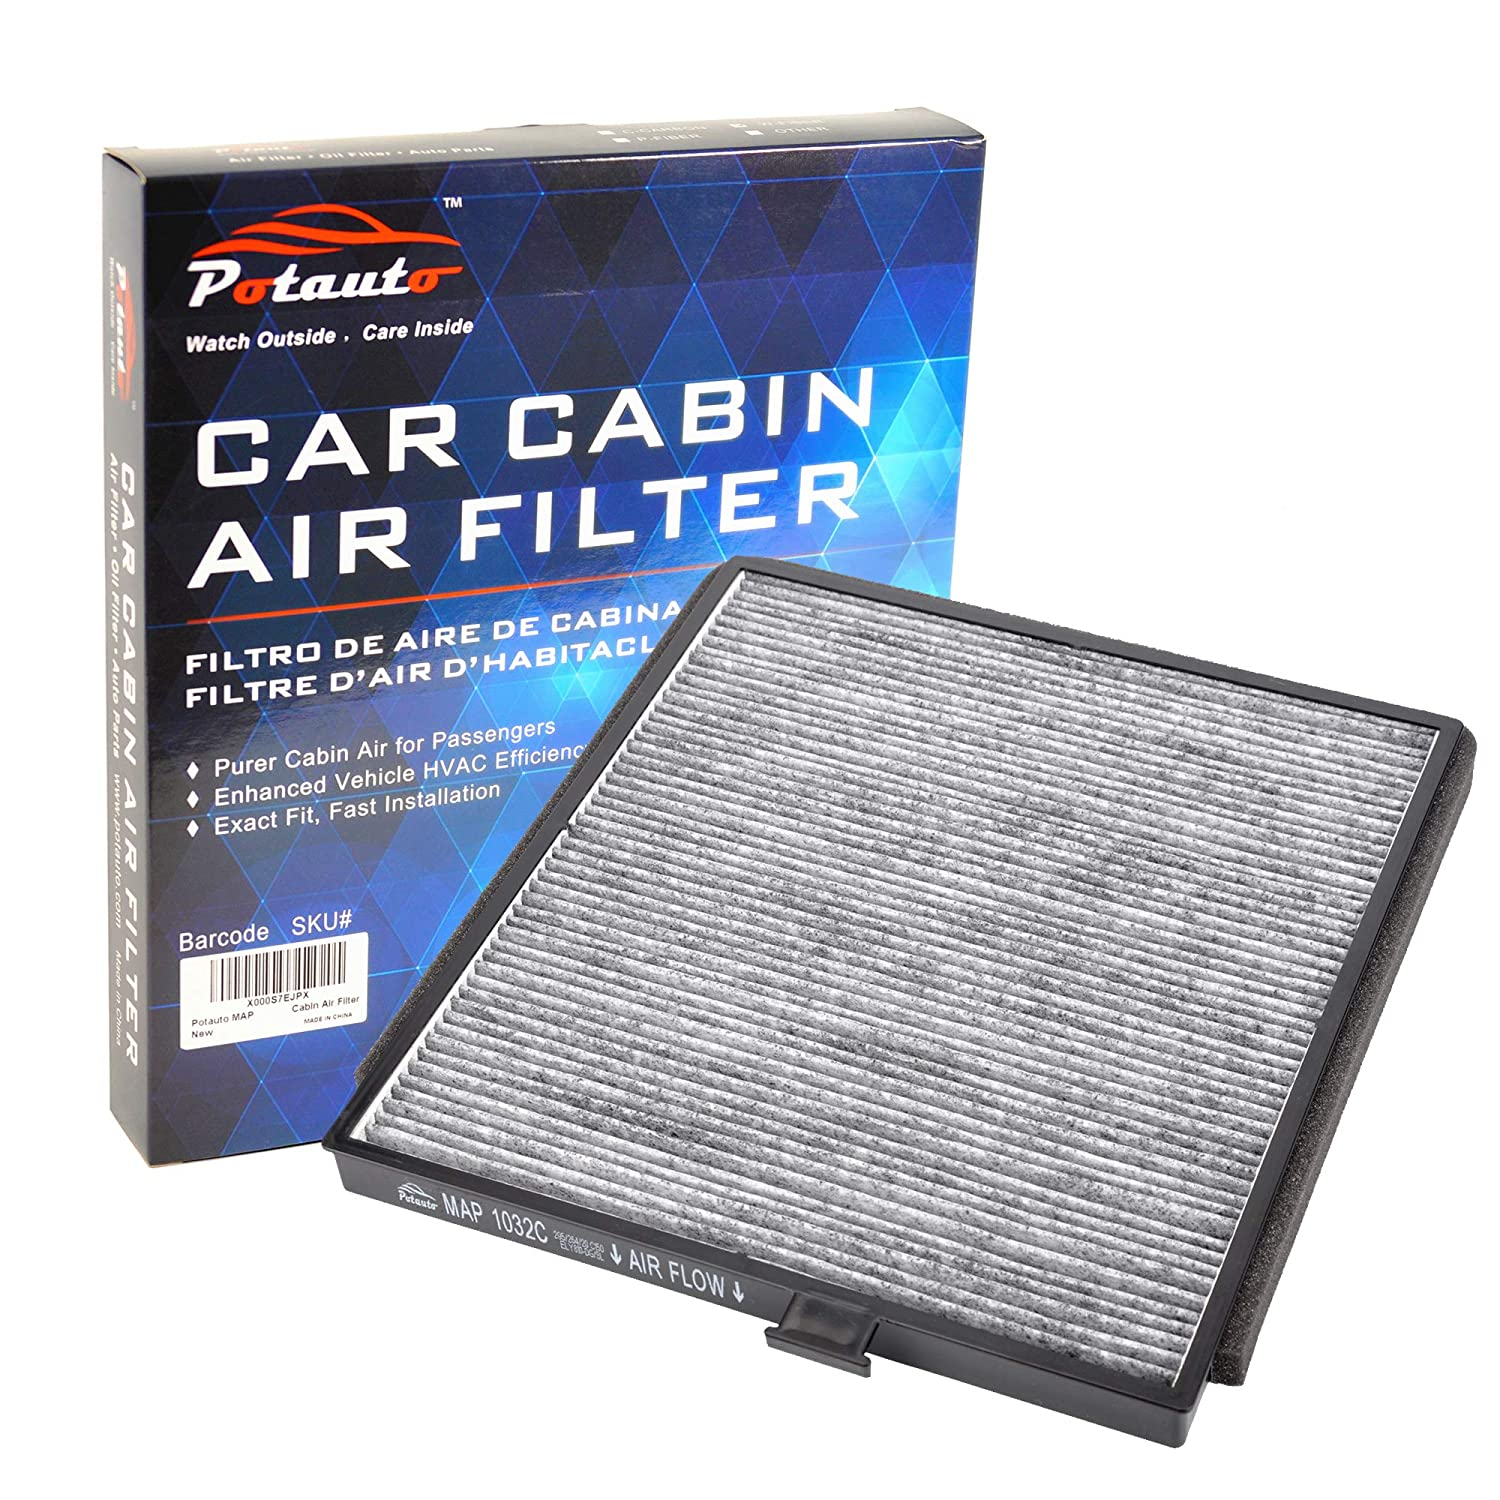 CF8813A Pilot HONDA MDX Odyssey Replacement High Performance Car Cabin Air Filter for ACURA POTAUTO MAP 1032W